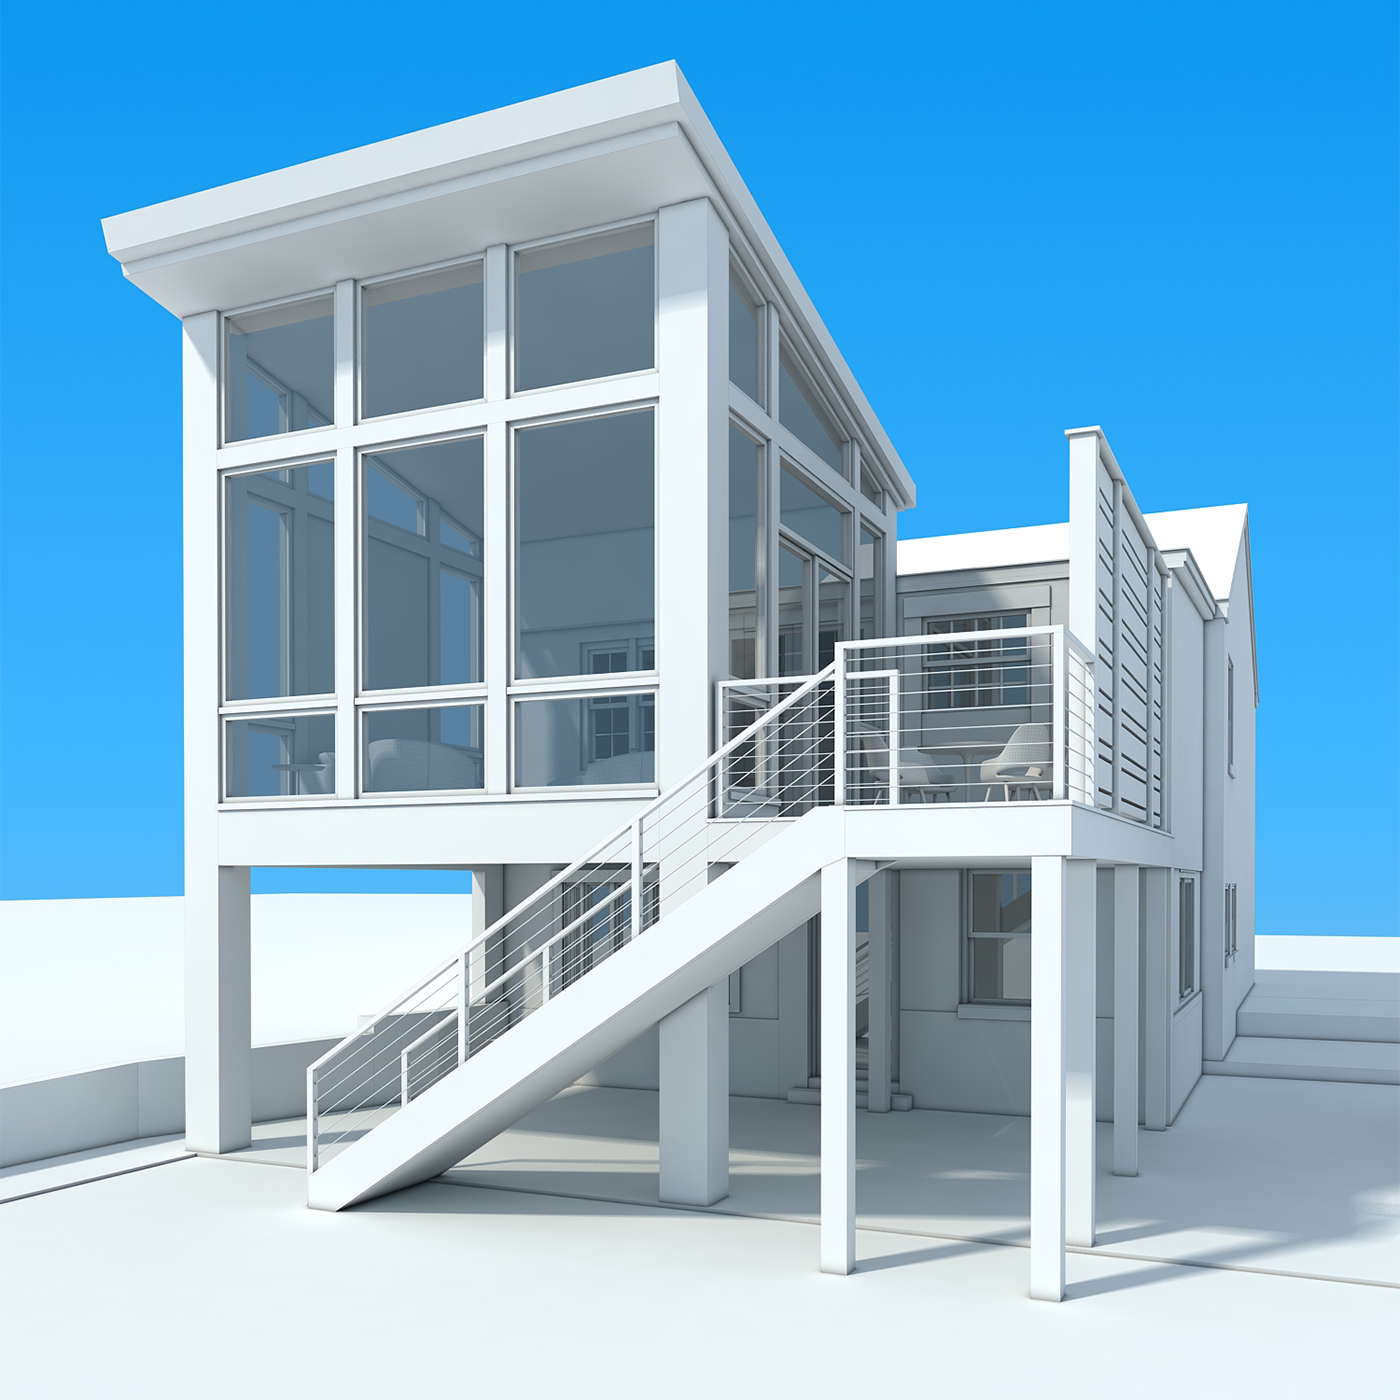 Home Sunroom Addition - conceptual rendering